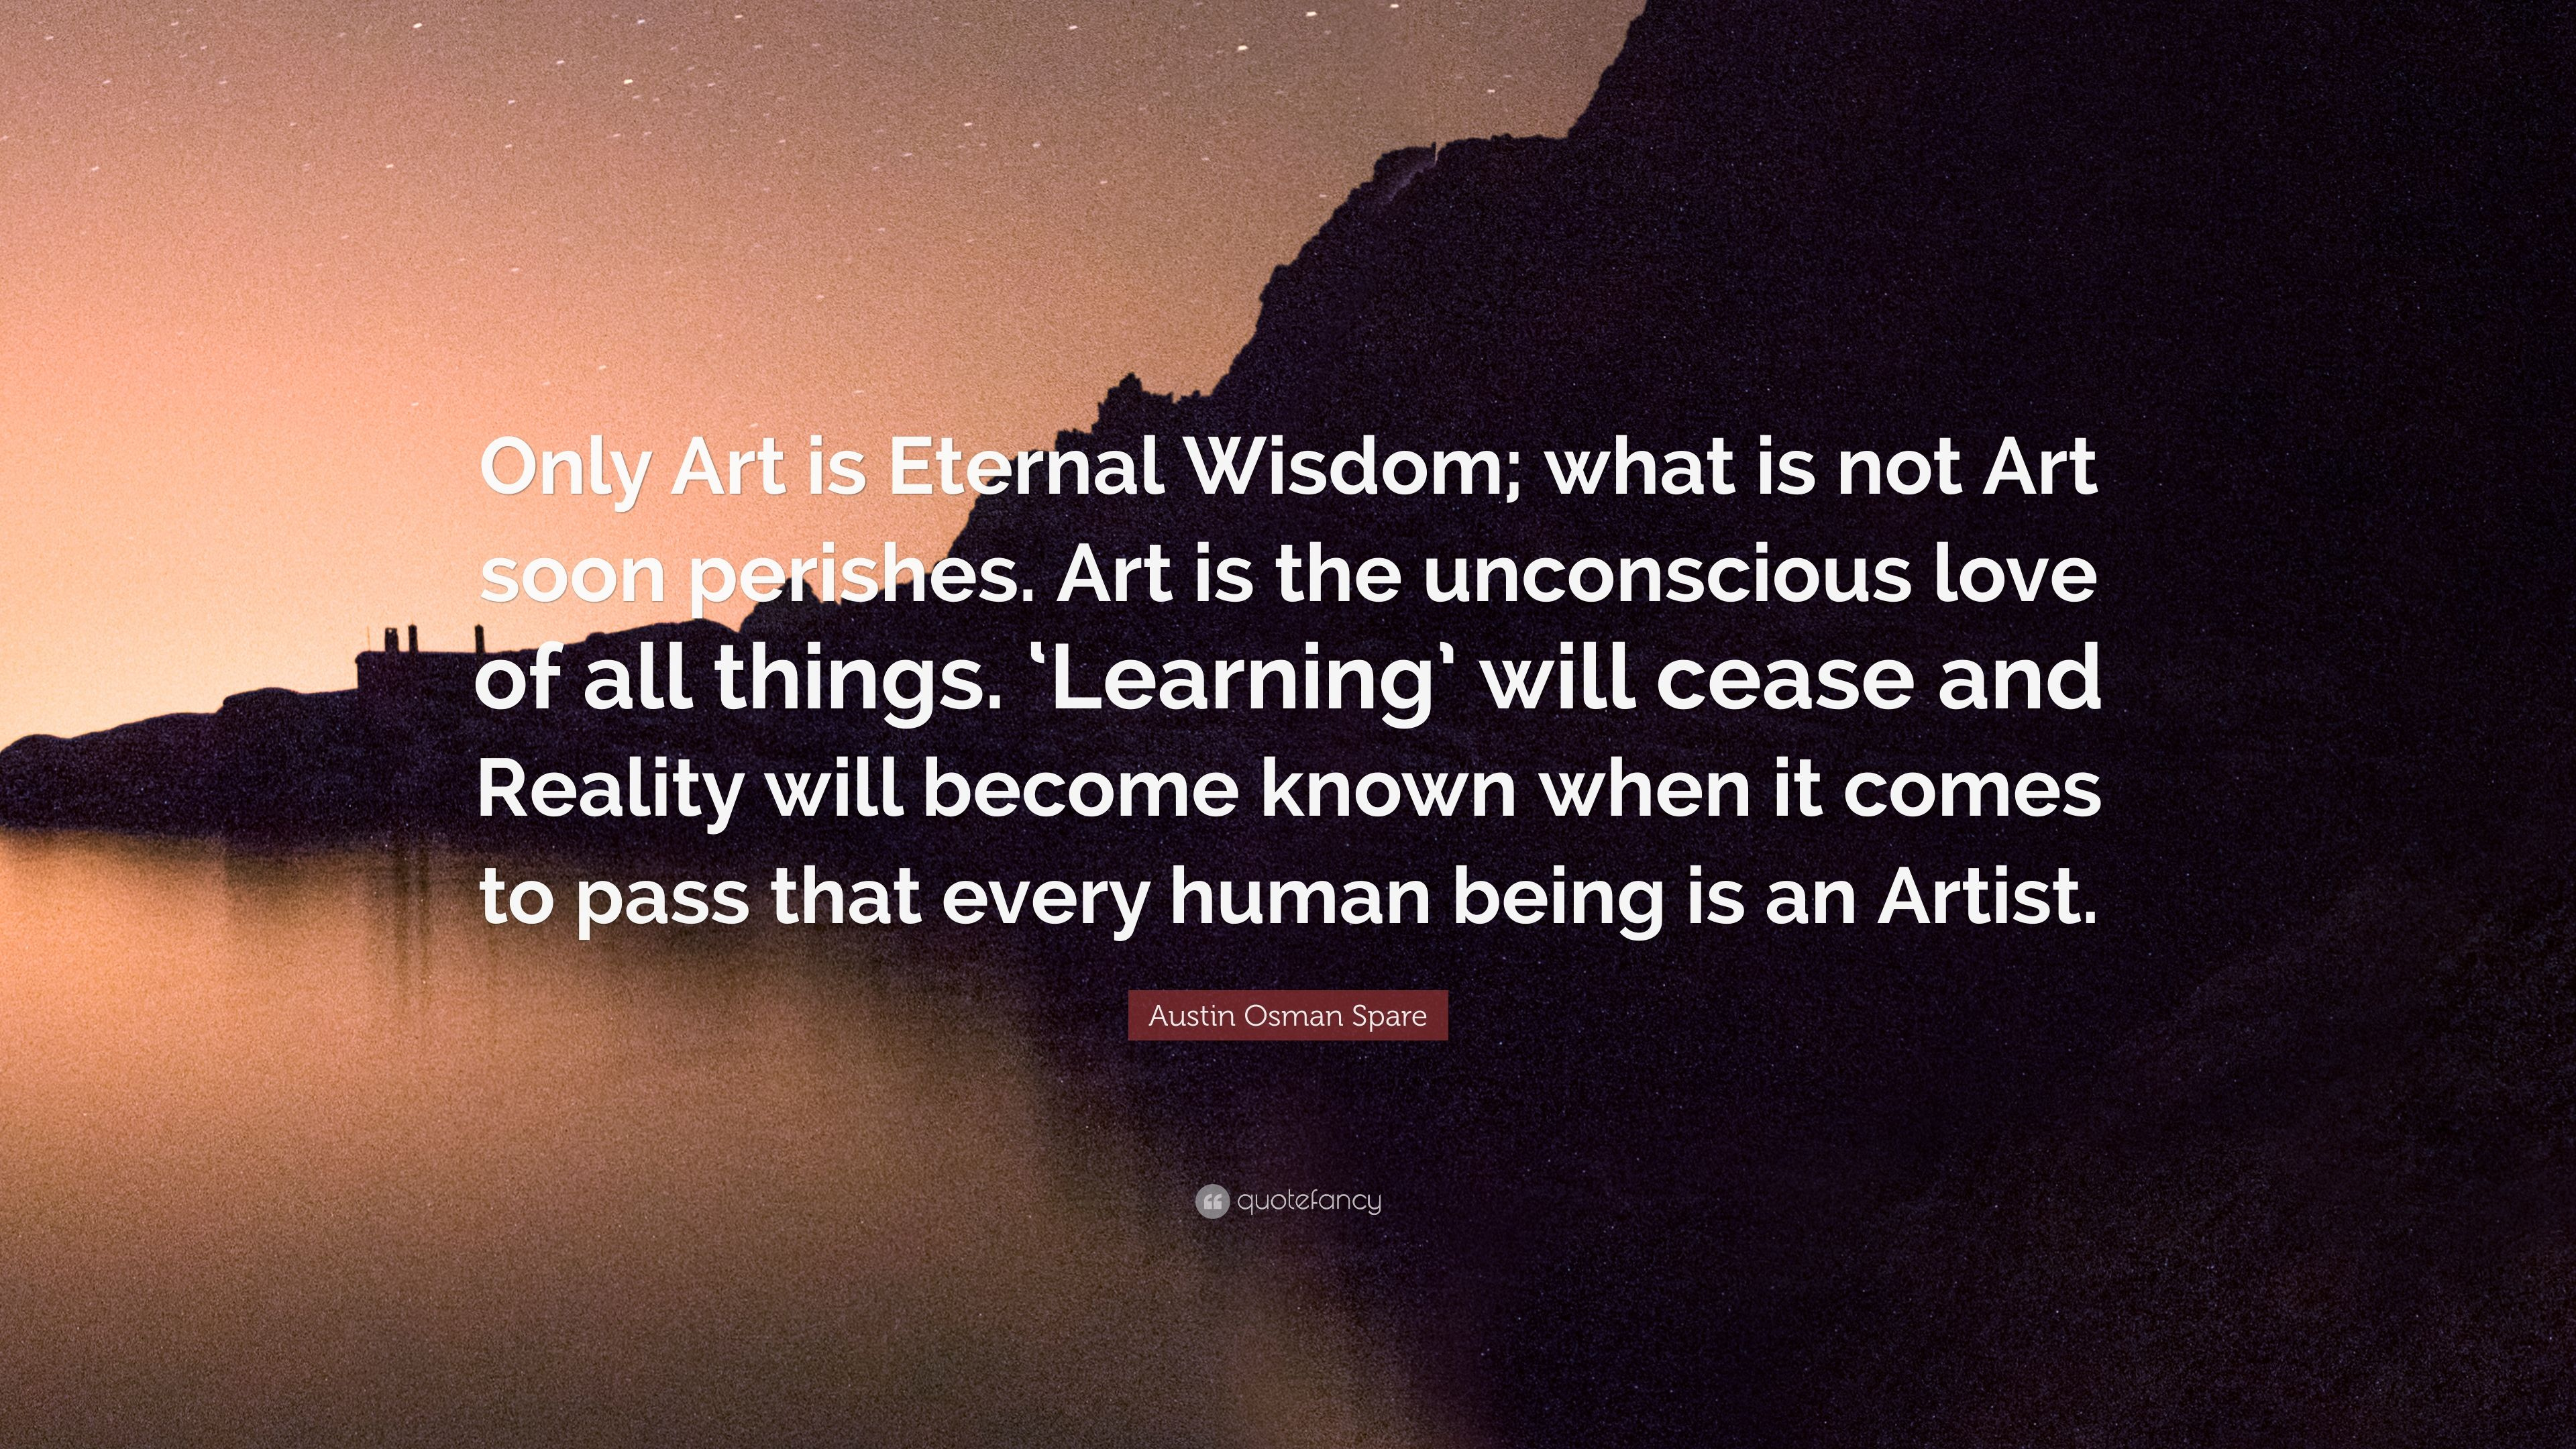 Austin Osman Spare Quote: U201cOnly Art Is Eternal Wisdom; What Is Not Art